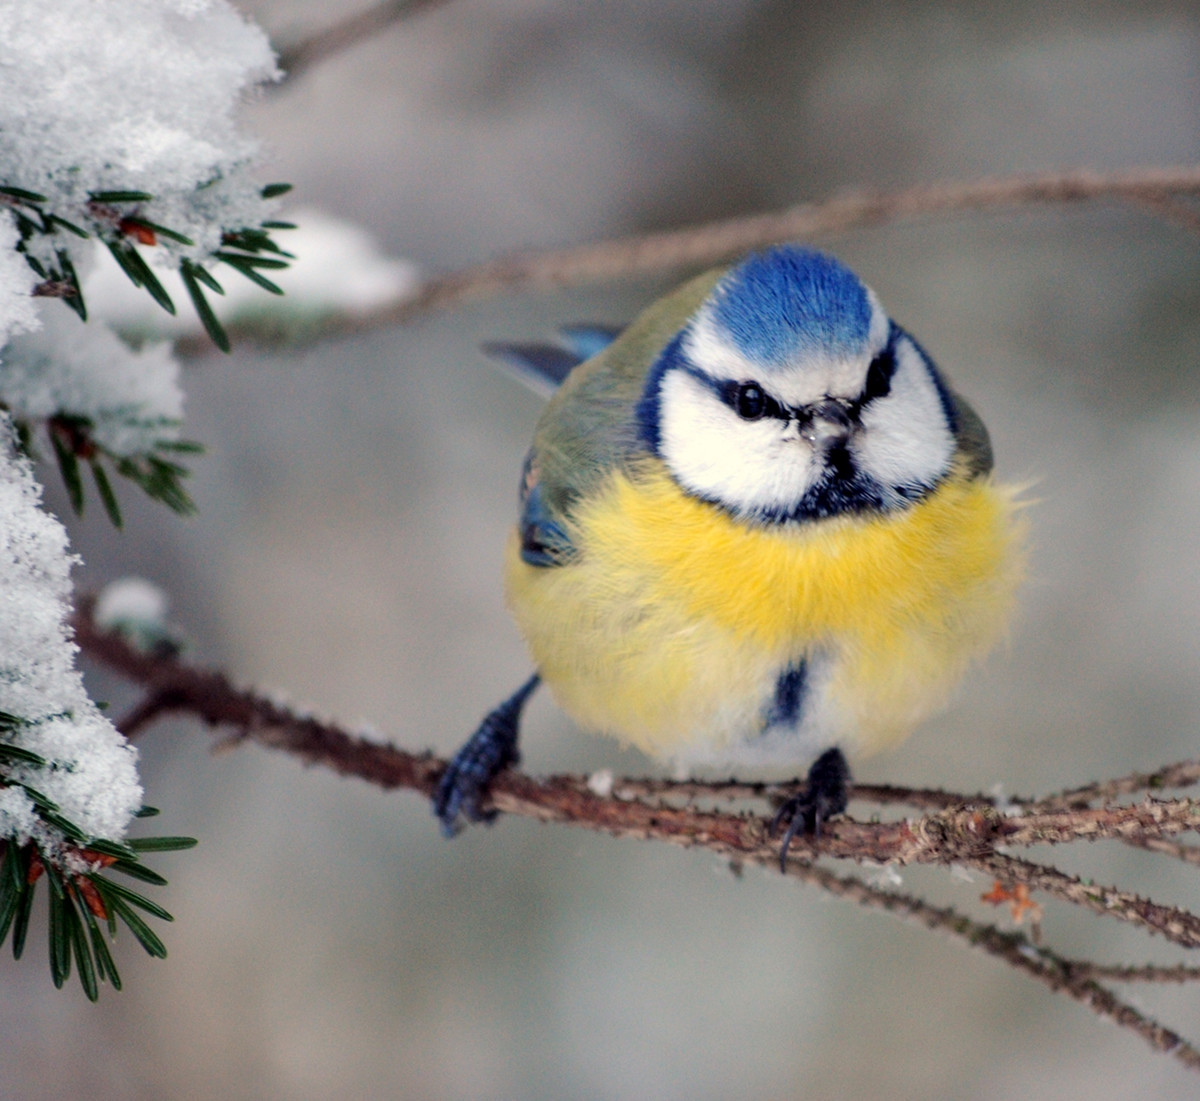 Blue Tit. Credit Ari Helminen